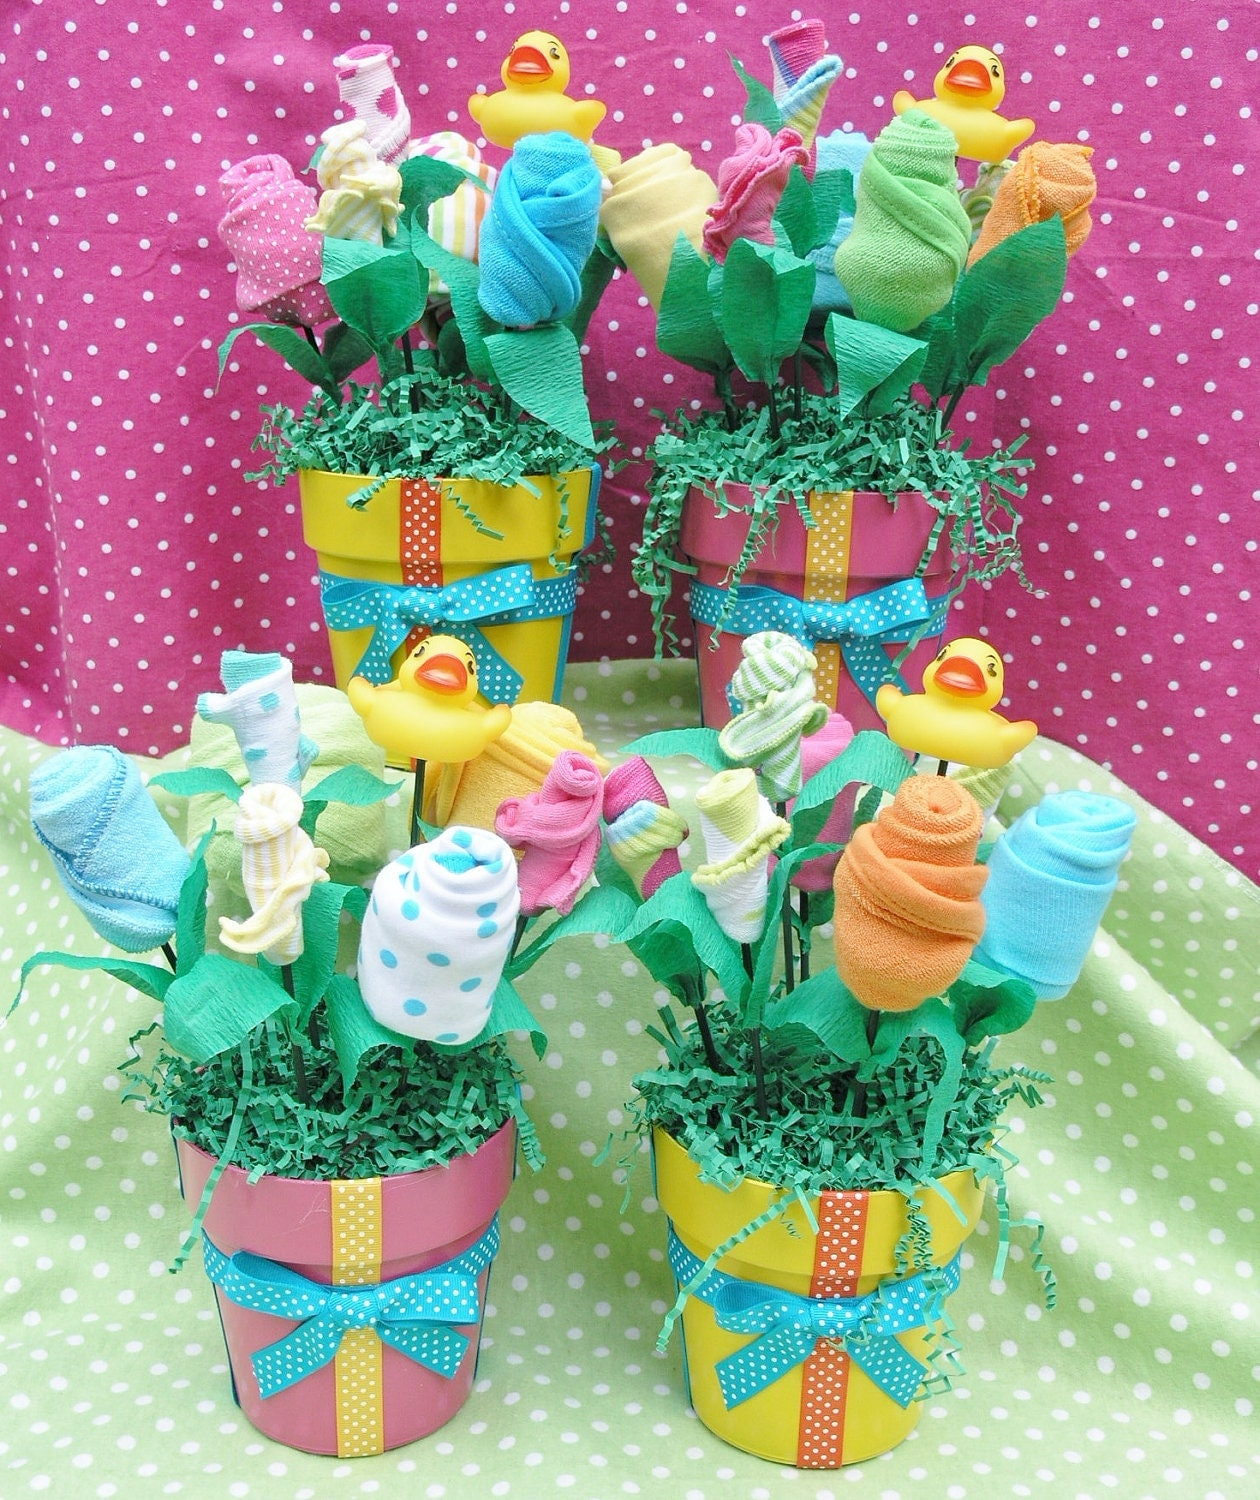 New Baby Floral Gift Ideas : Unique baby shower centerpieces bouquet by